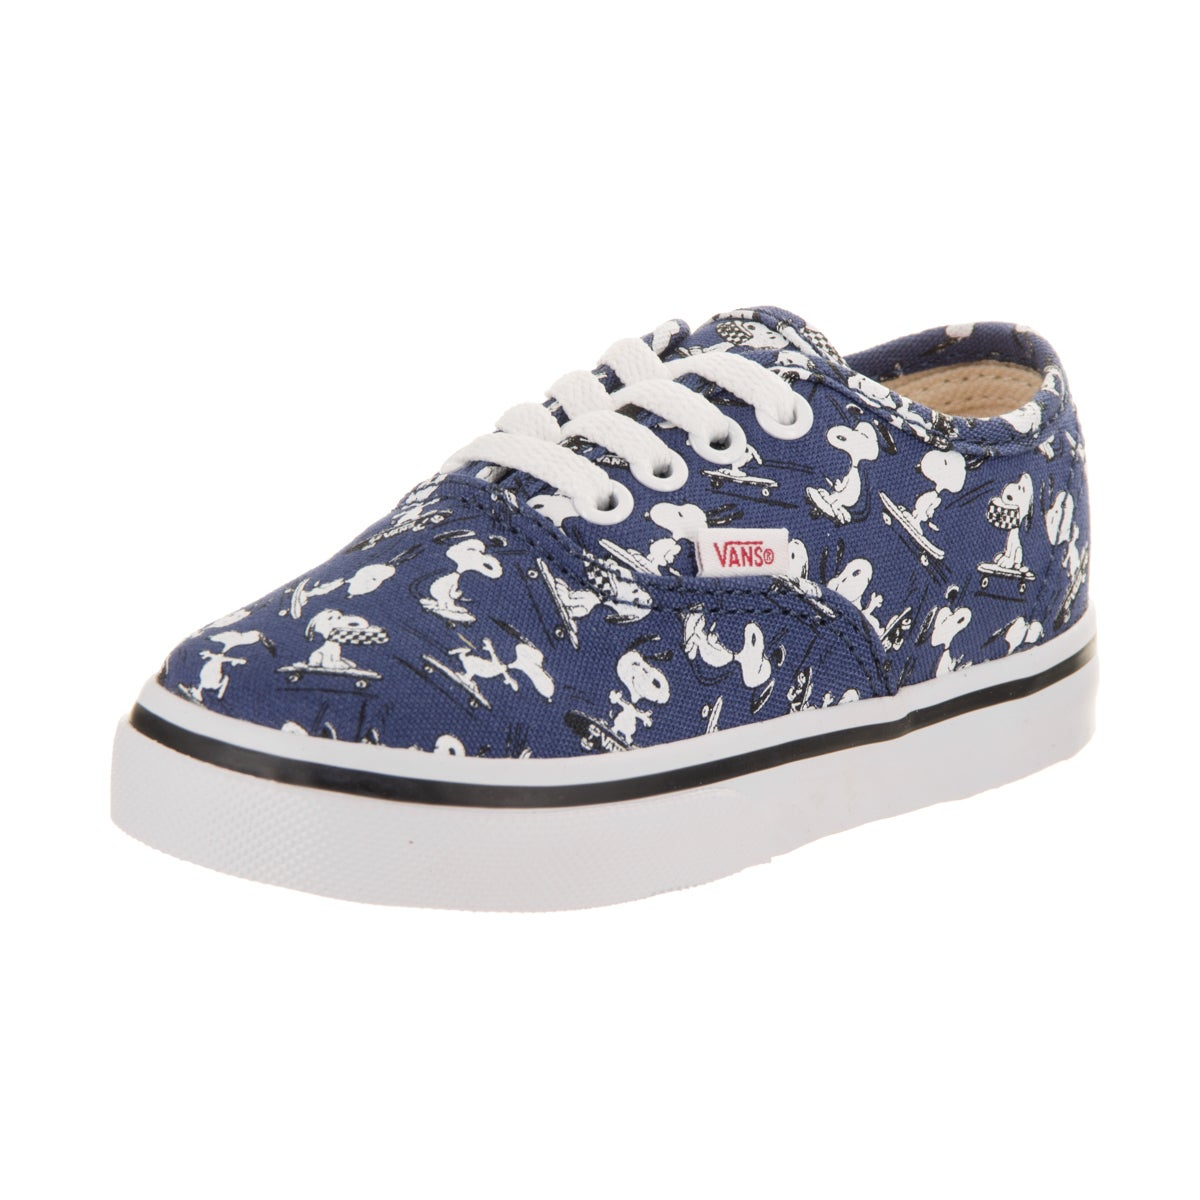 Vans Toddlers Authentic (Peanuts) Skate Shoe - Free Shipping On ... 5517dd0ff